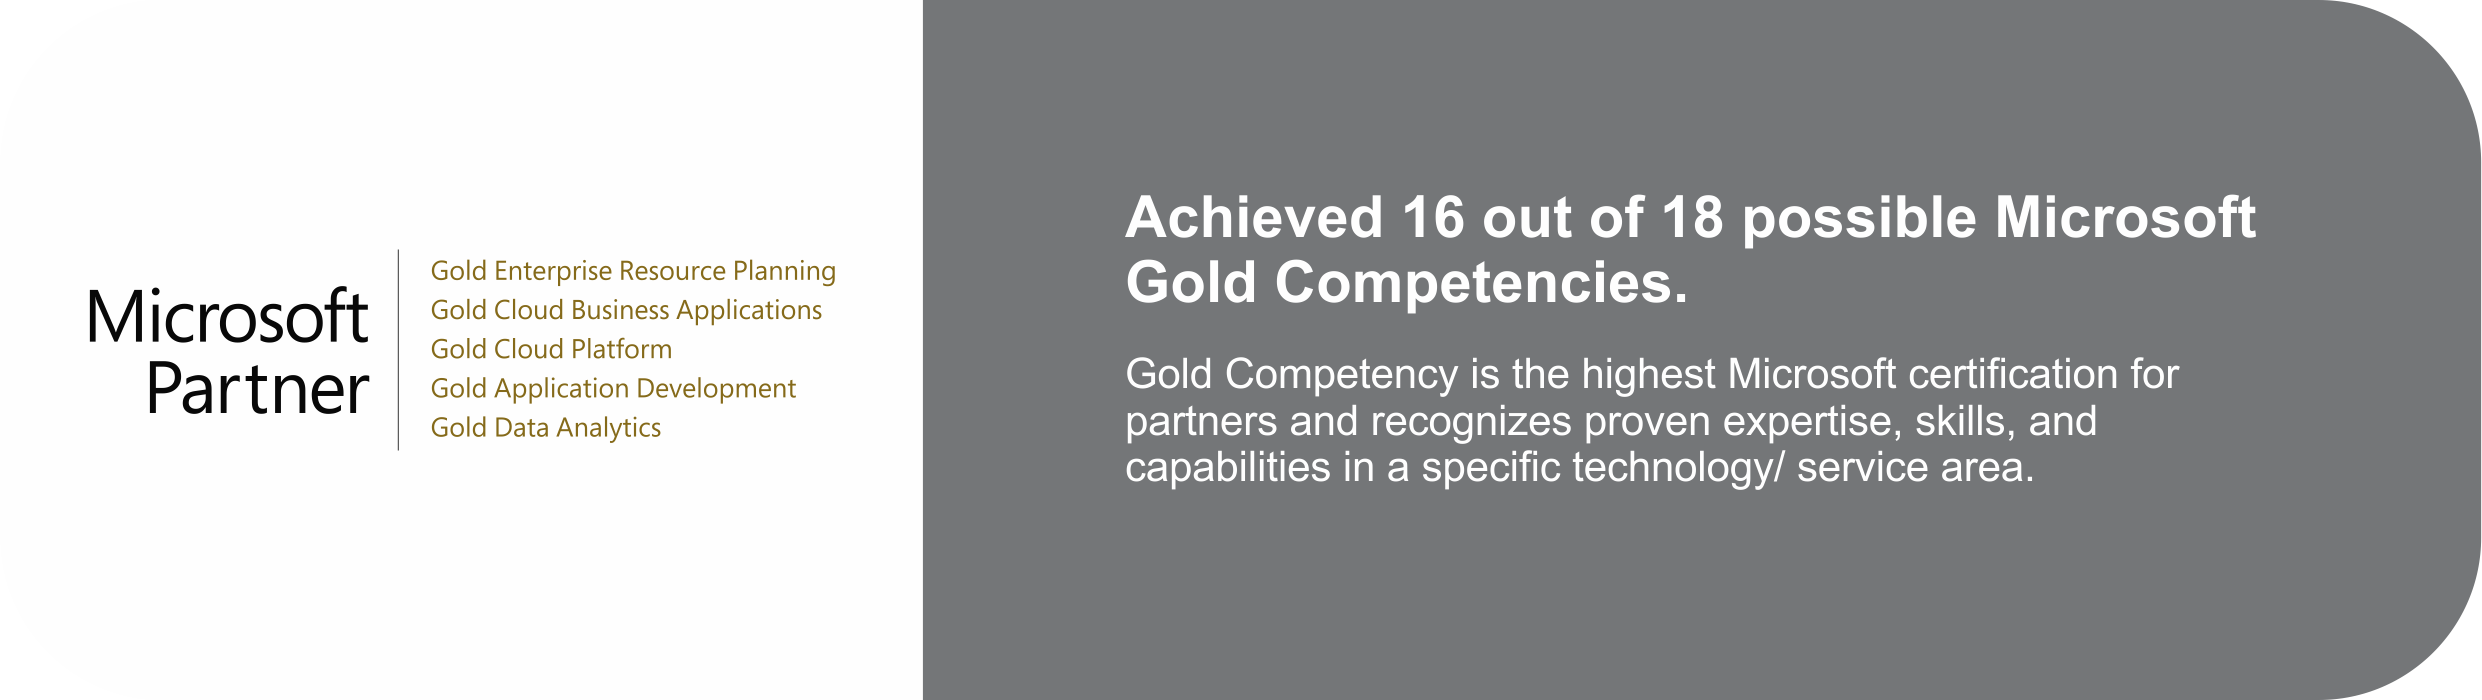 sa.global achieved 16 out of 18 possible Microsoft Gold Competencies